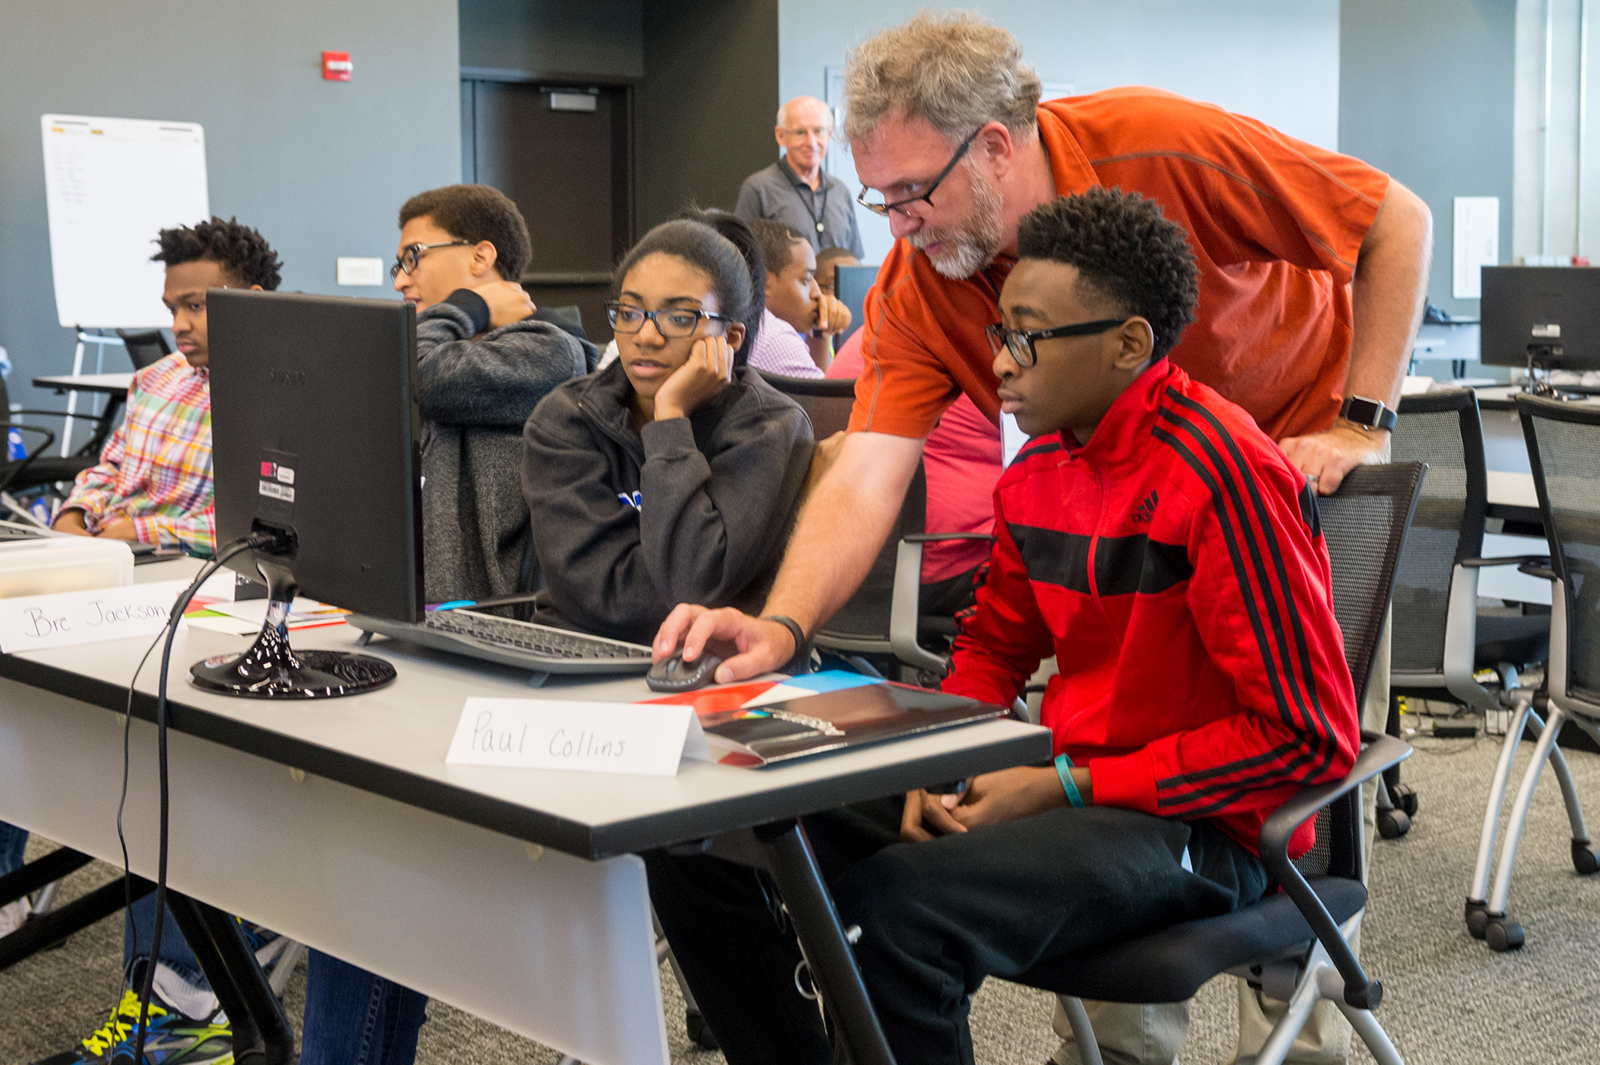 Mike Papka, director of the Argonne Leadership Computing Facility, works with high school students at coding camp. Students learned the Python programming language, among other problem-solving skills related to computer science.